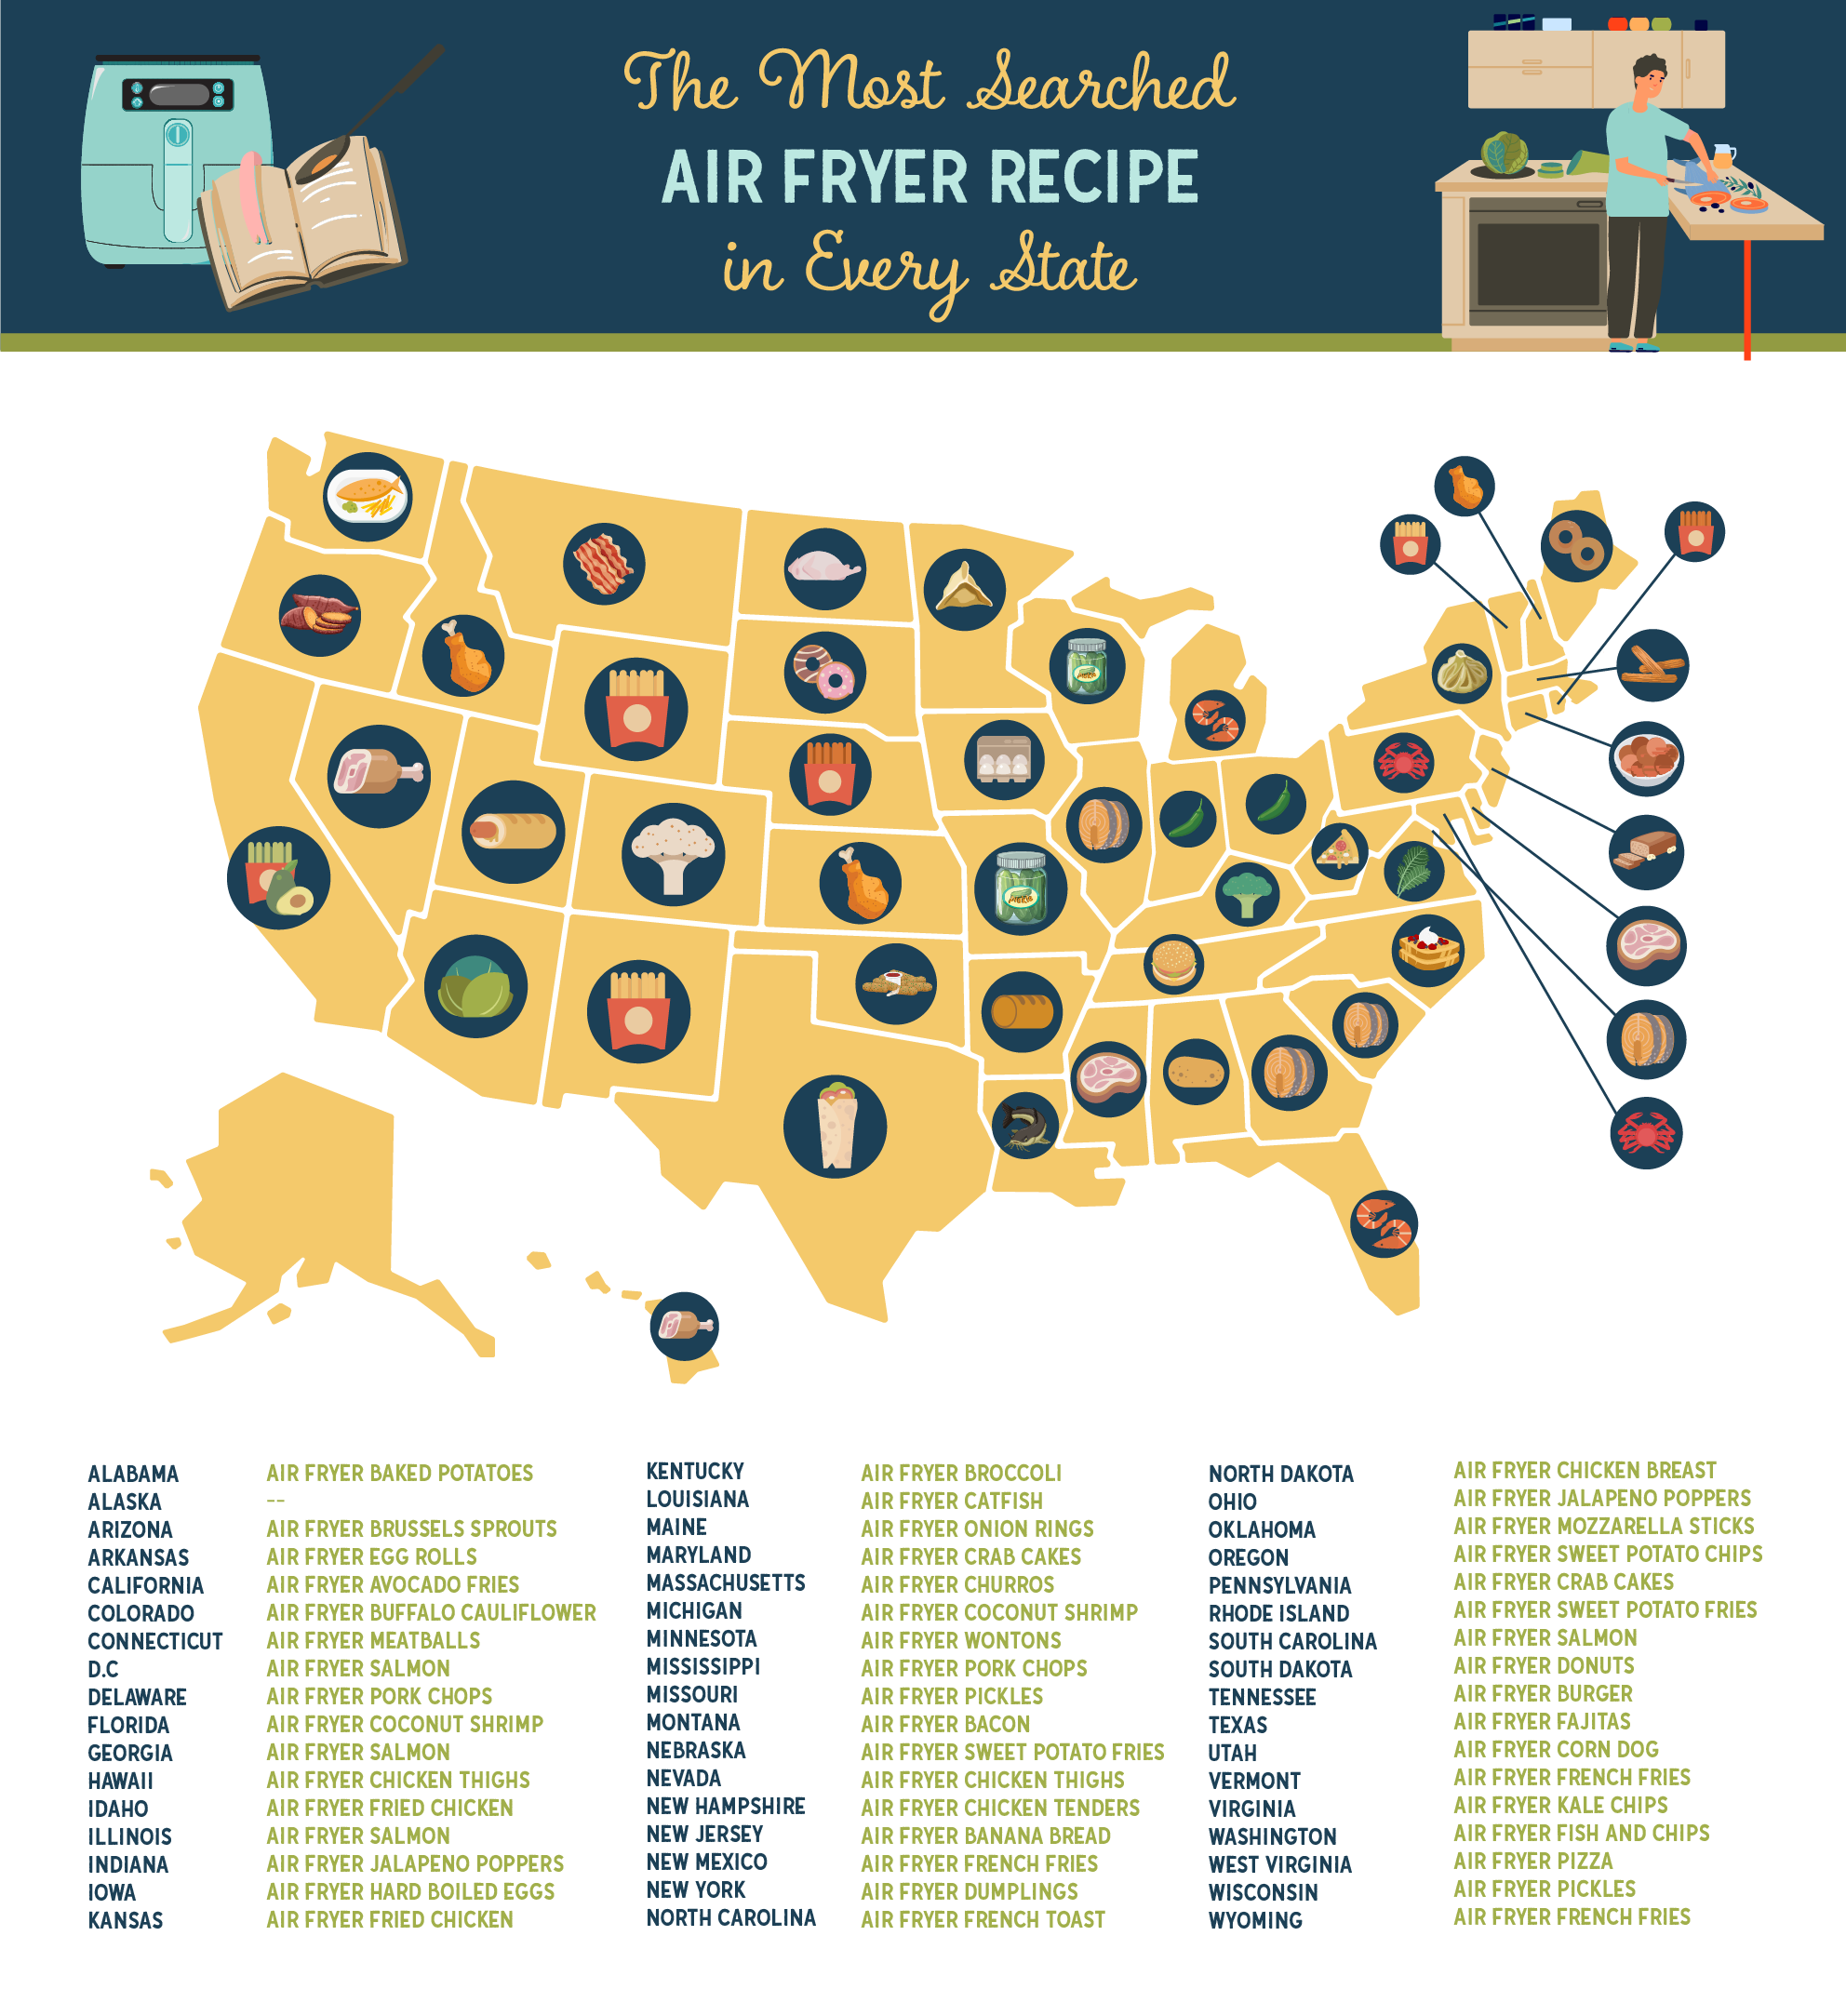 US map showing the top searched air fryer recipe by state